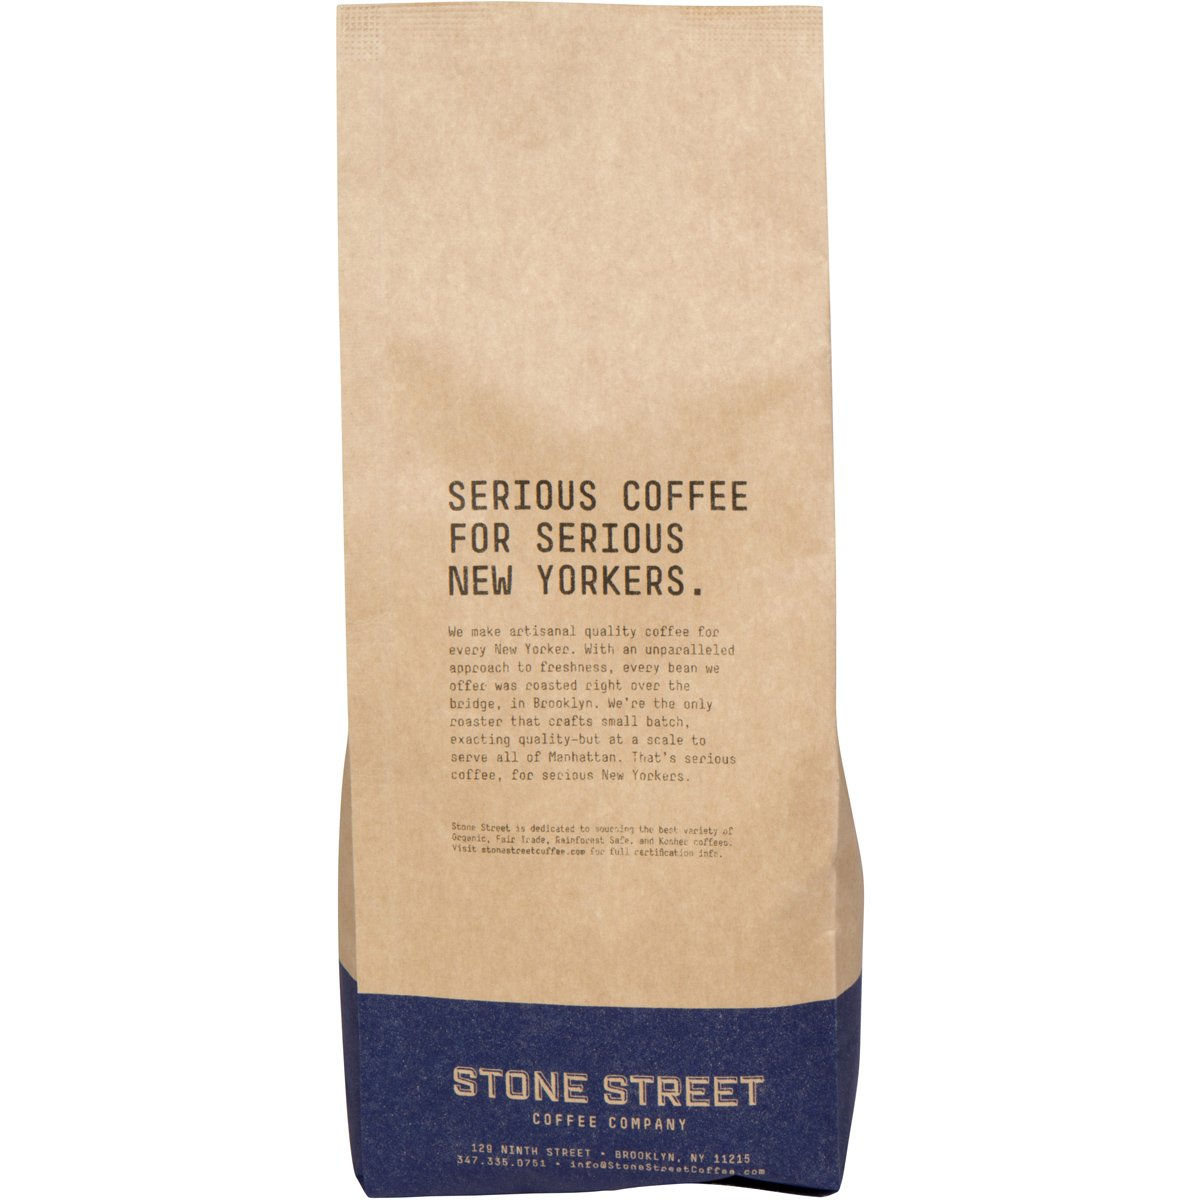 COLOMBIAN SUPREMO Unroasted Green Raw Coffee Beans, 2 LB Bag, 100% Arabica Top Grade Extra Large